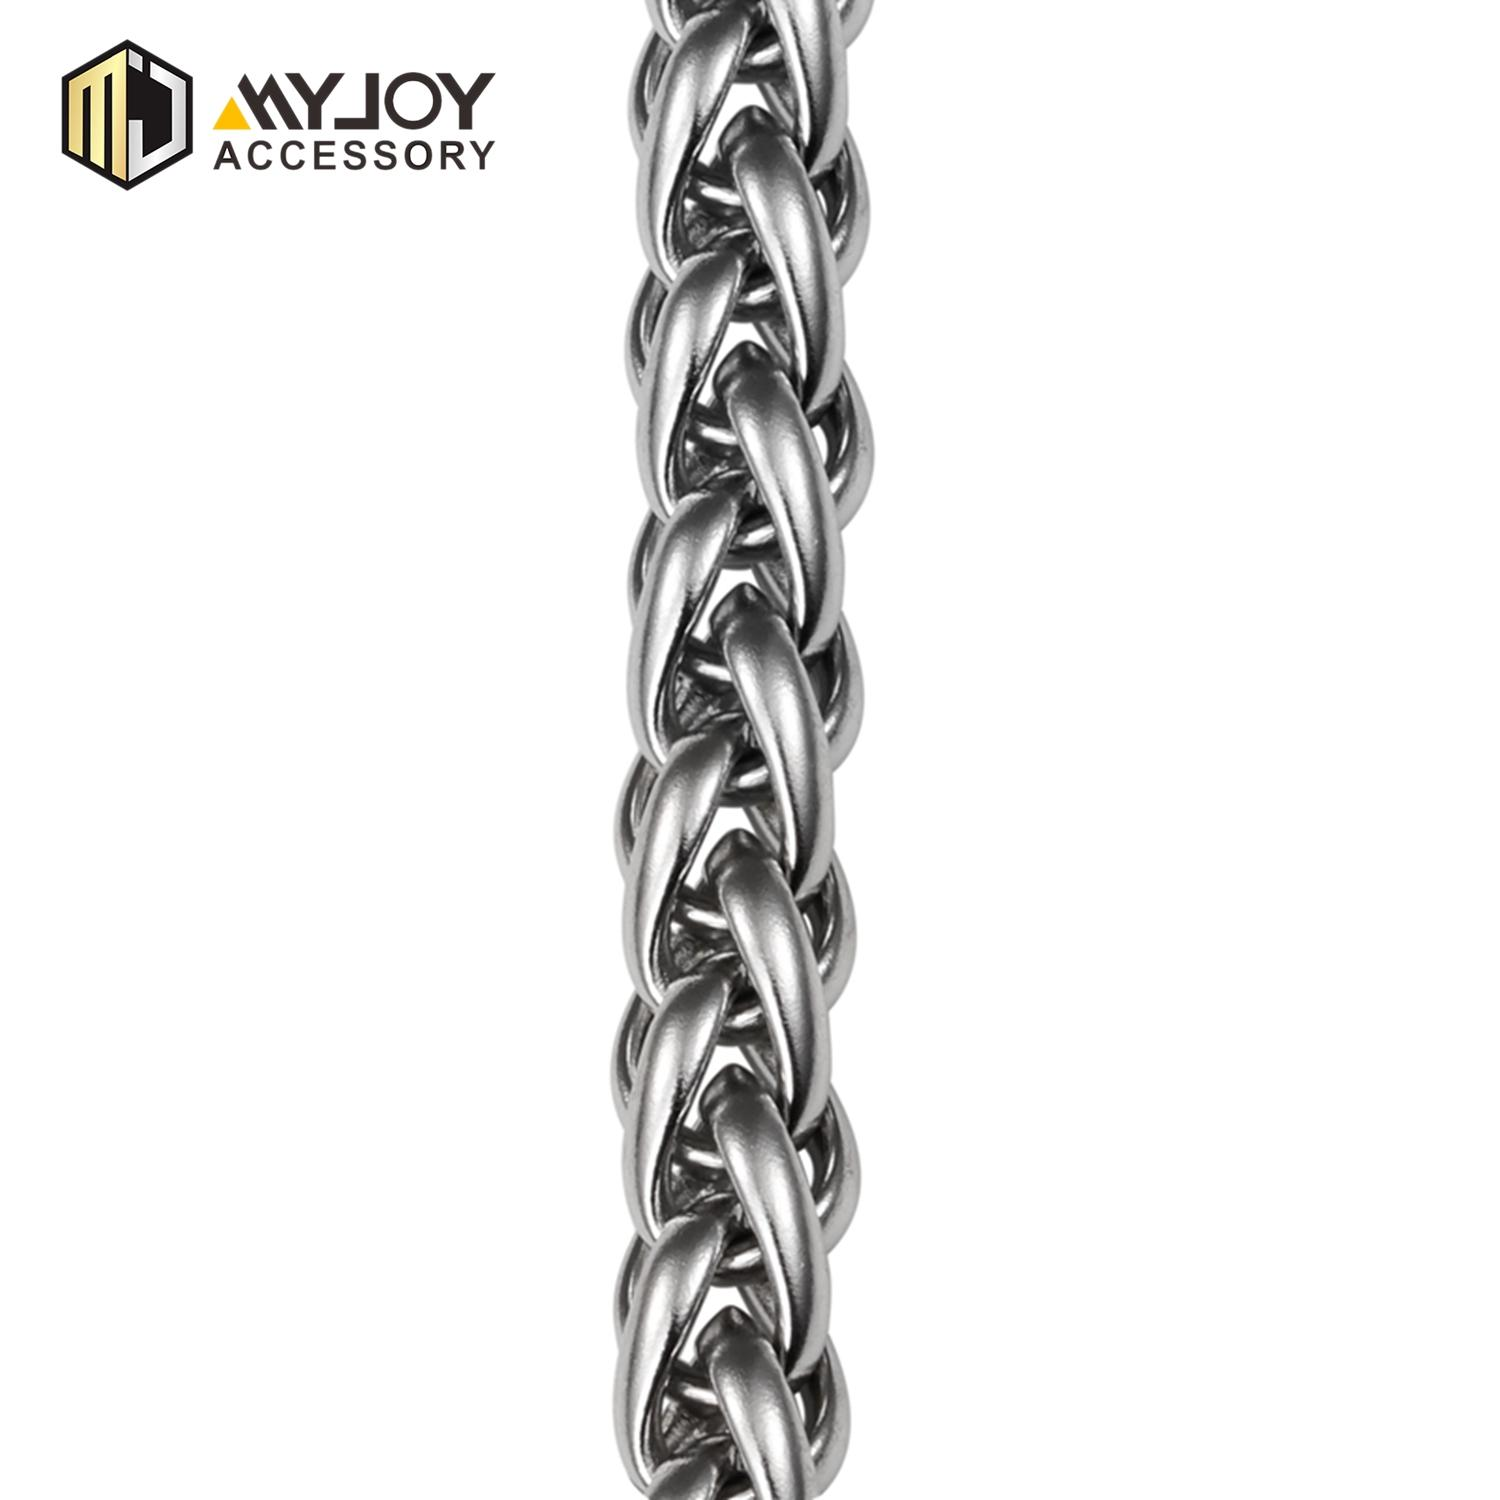 MYJOY new handbag chain strap manufacturers for bags-1